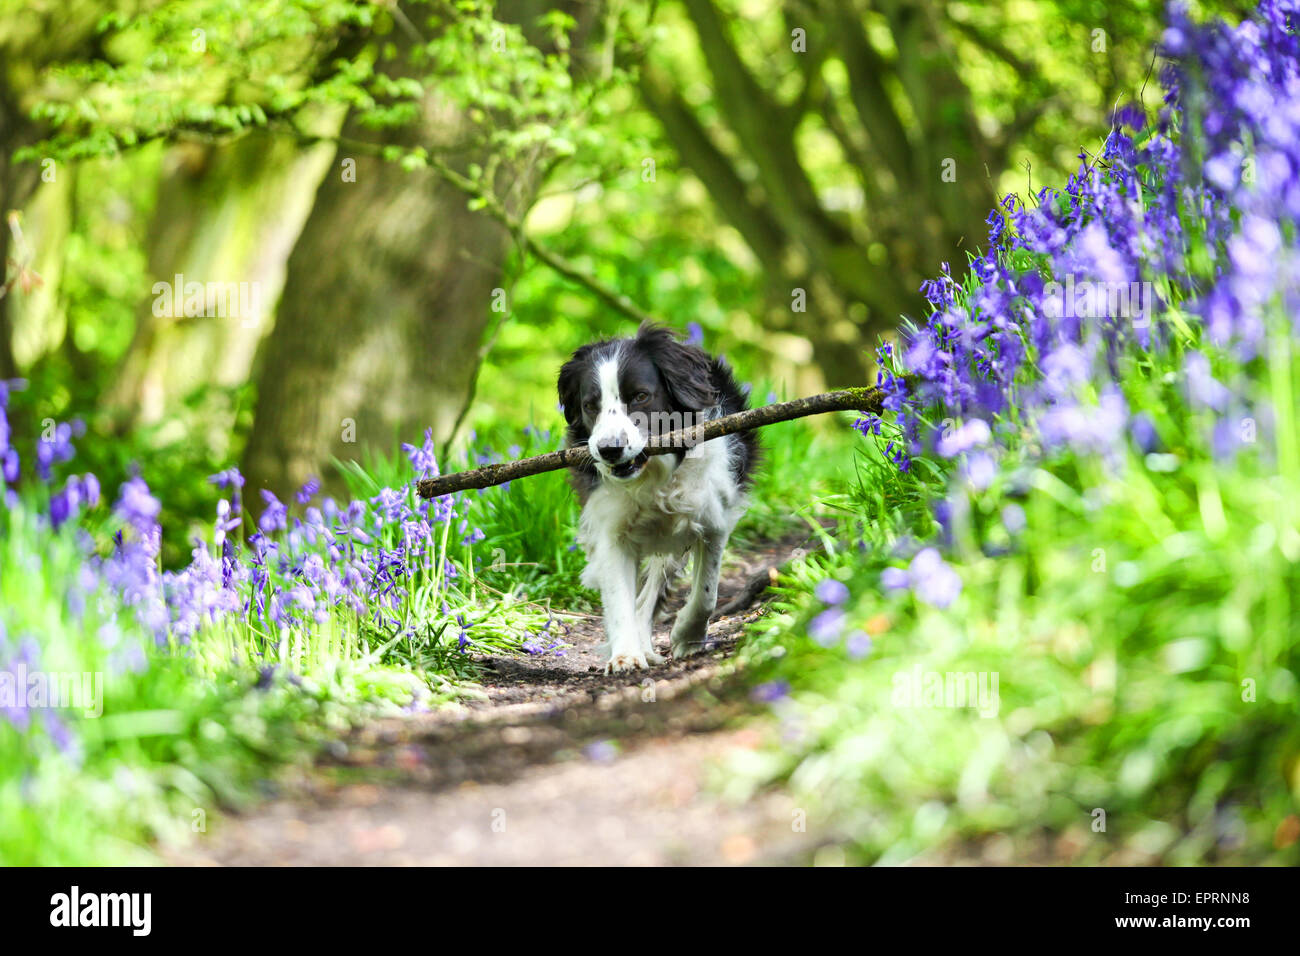 Target Wood, Stoke on Trent, Staffordshire, UK. 21st May 2015. UK Weather: Molly the Border Collie cross enjoying - Stock Image